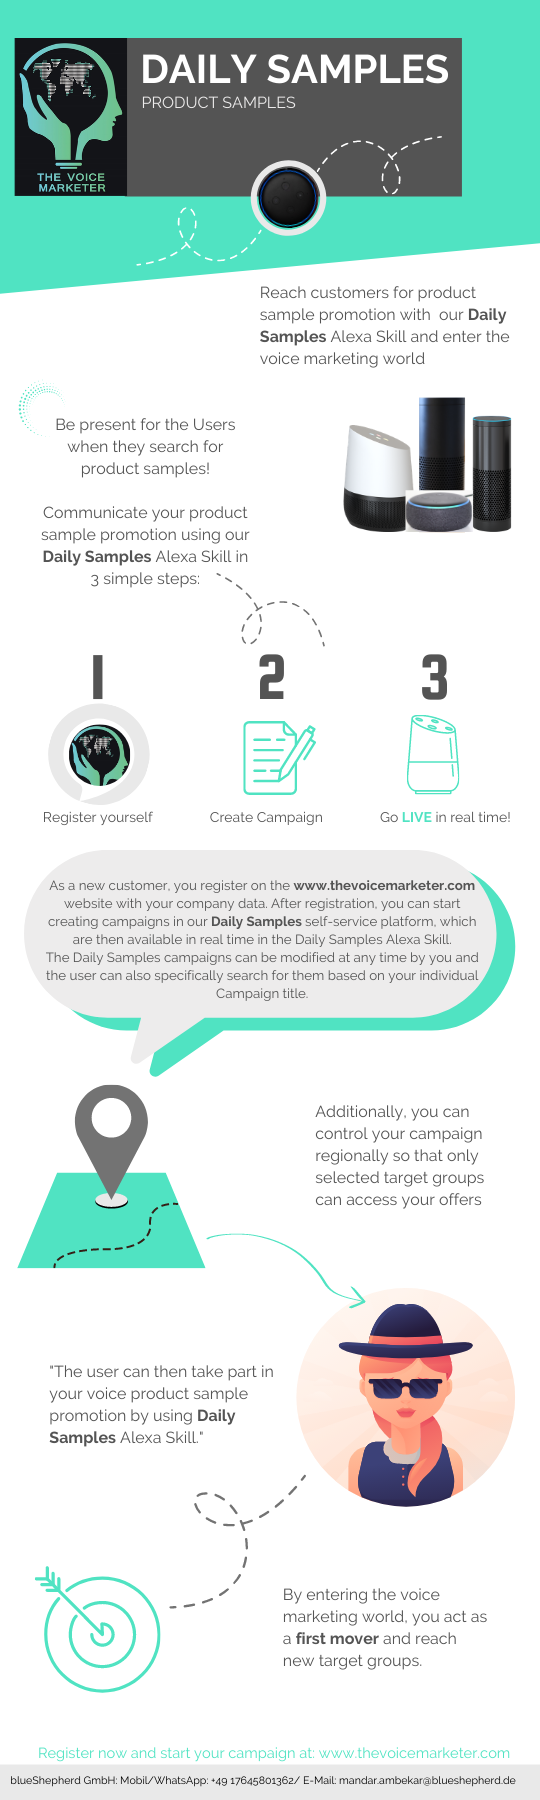 Daily Samples workflow Infographic